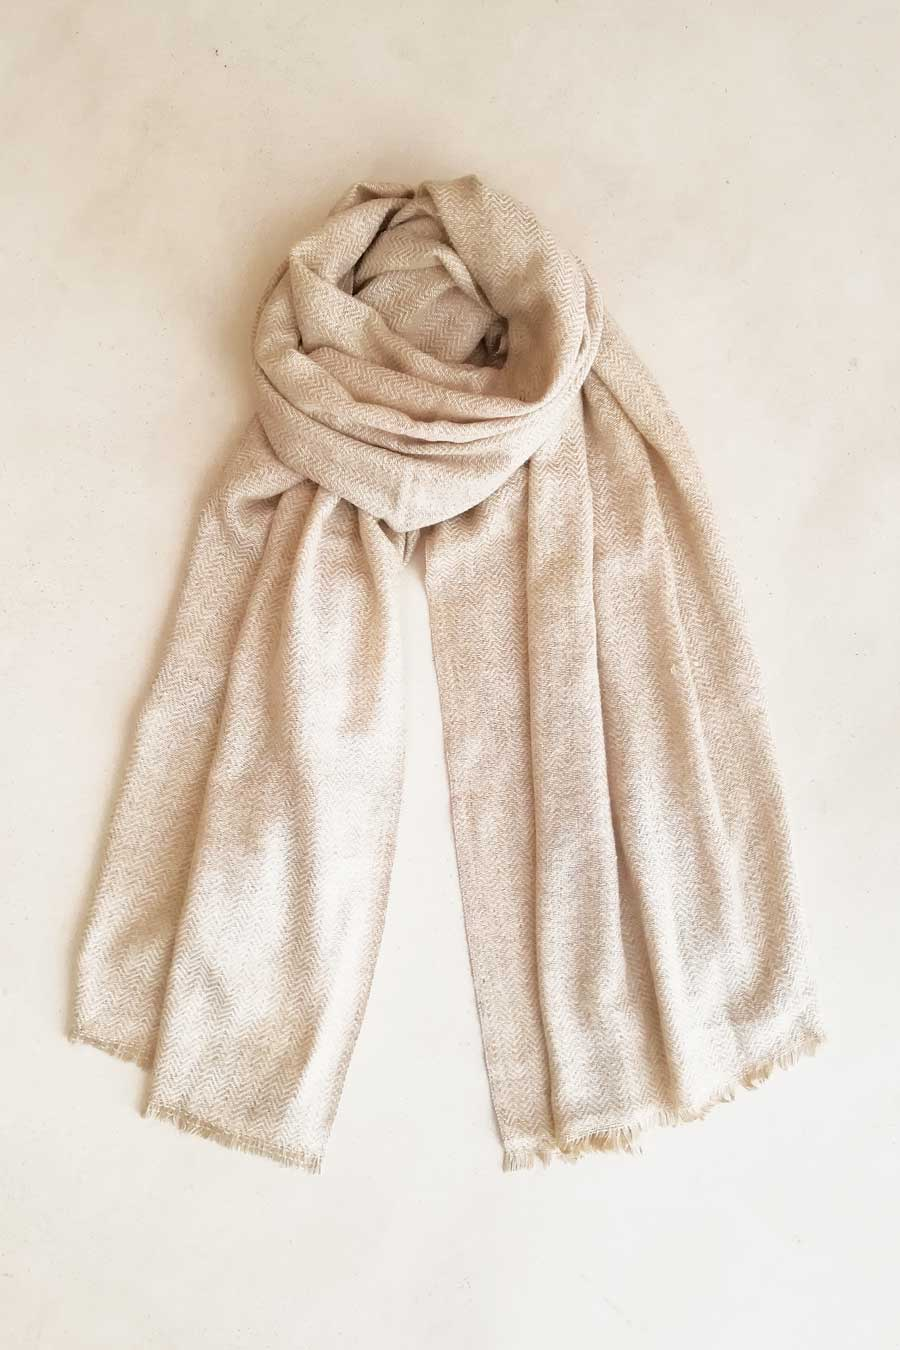 Off-White and Beige Zig Zag Wool Shawl